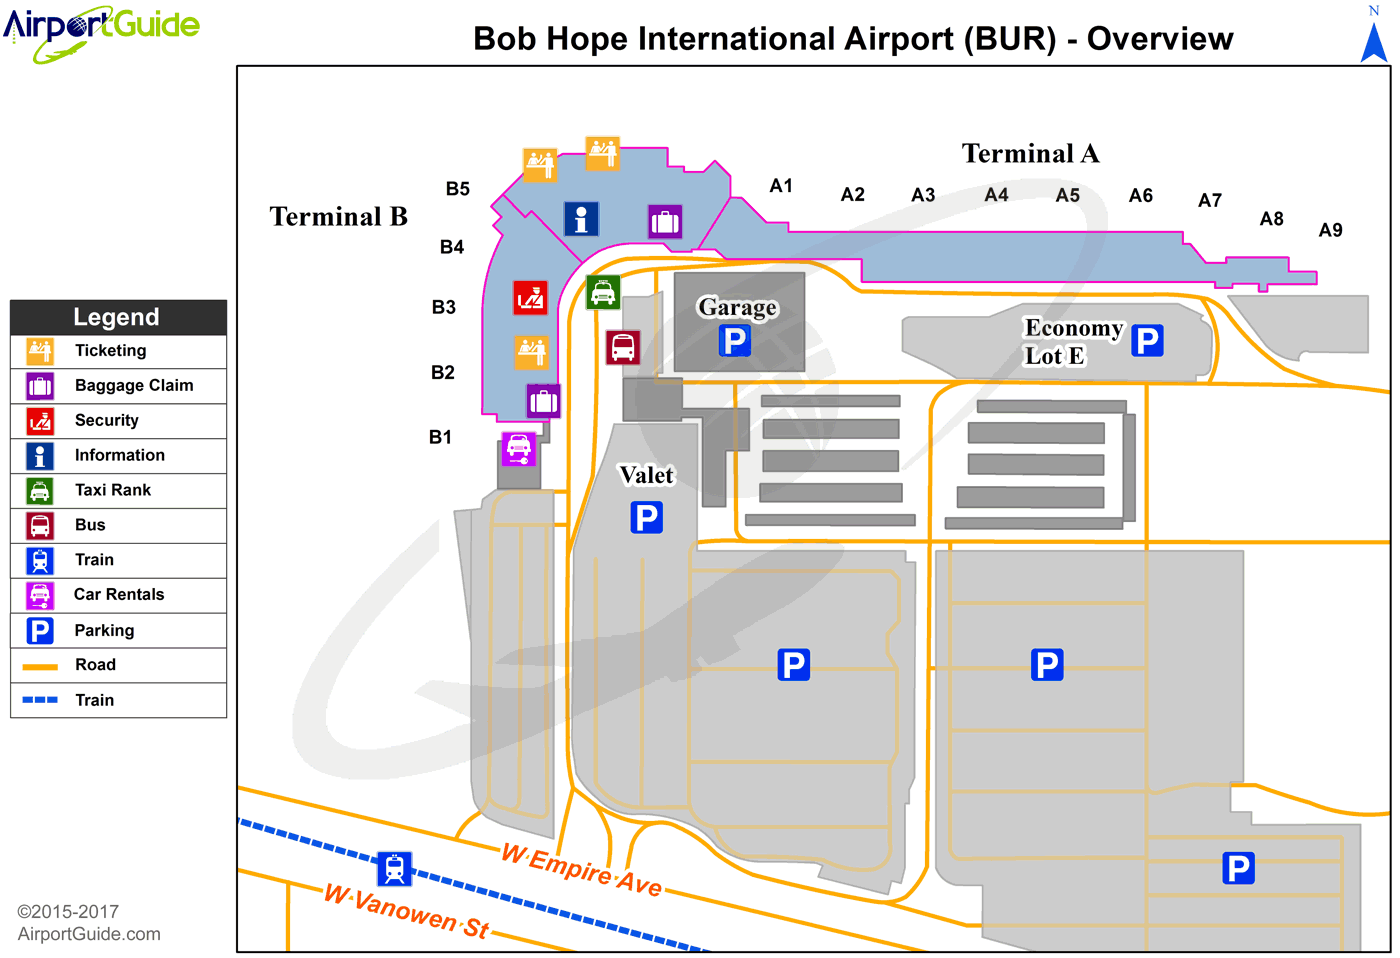 Burbank - Bob Hope (BUR) Airport Terminal Map - Overview